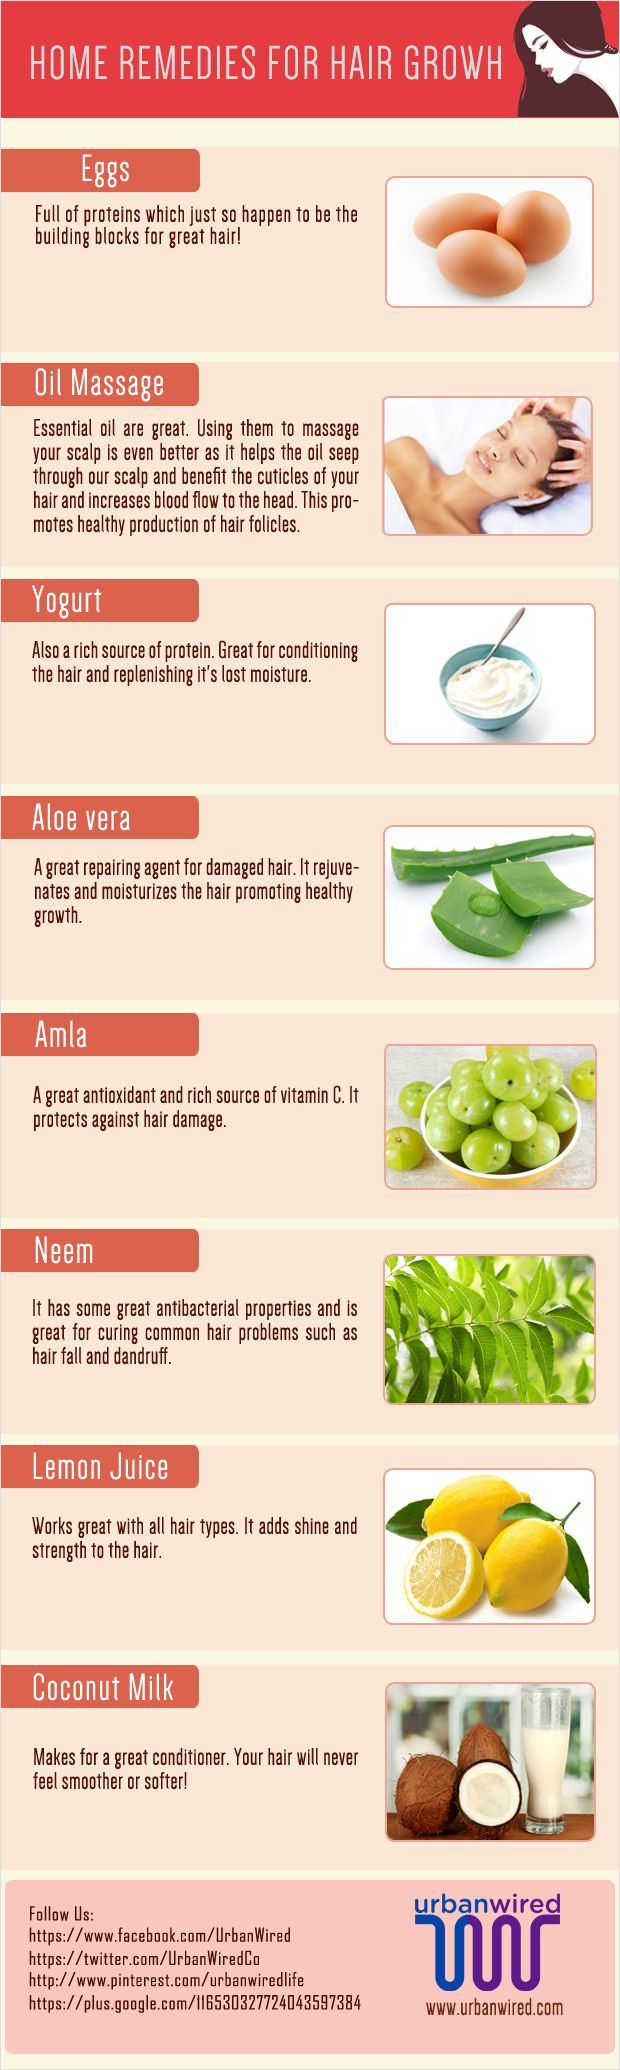 Hair Growth Remedies ~ 8 Effective Home Remedies for Hair Growth, Strength and Glow